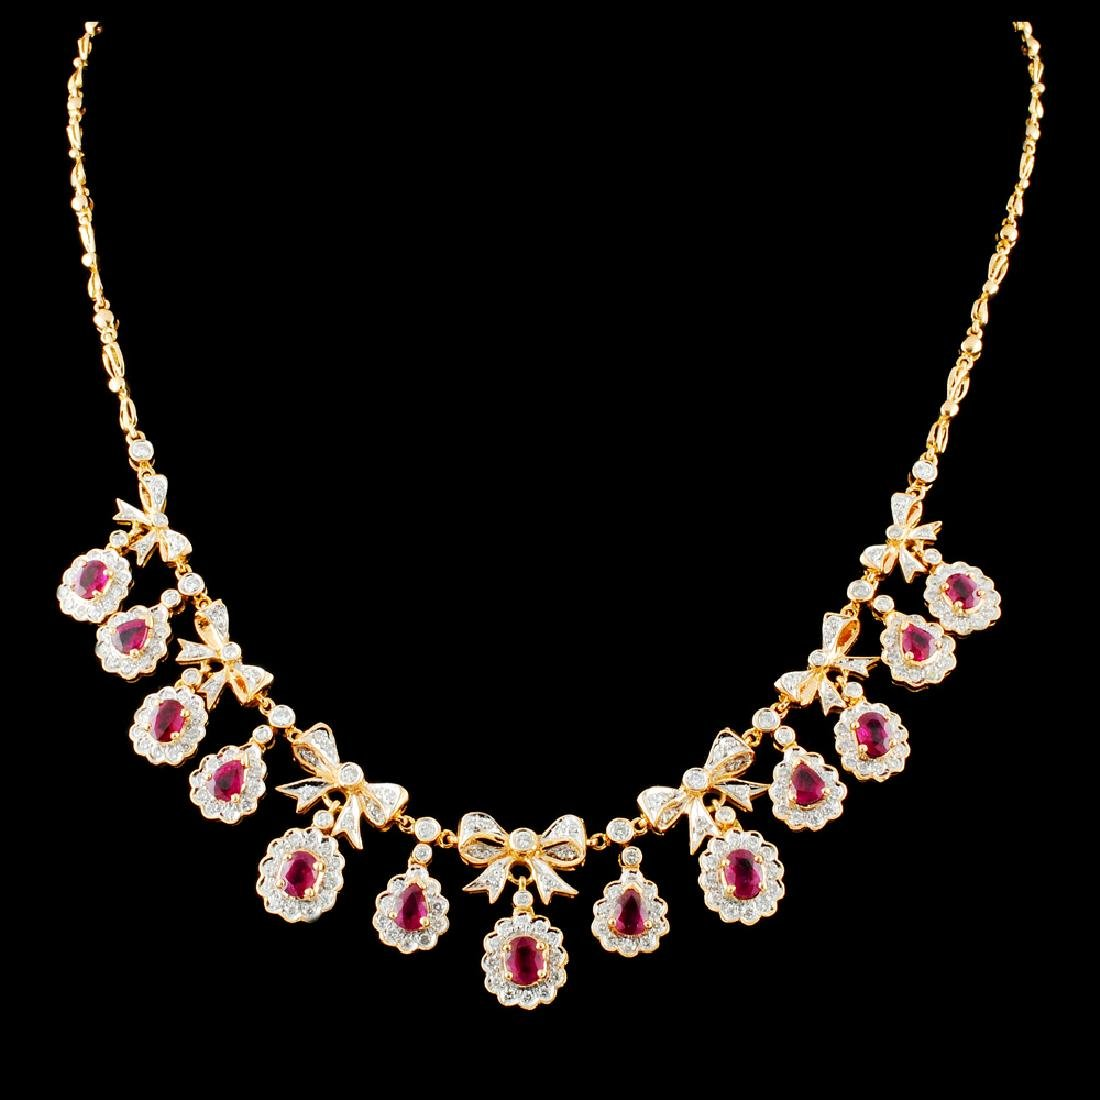 18K Gold 4.16ct Ruby & 1.92ctw Diamond Necklace